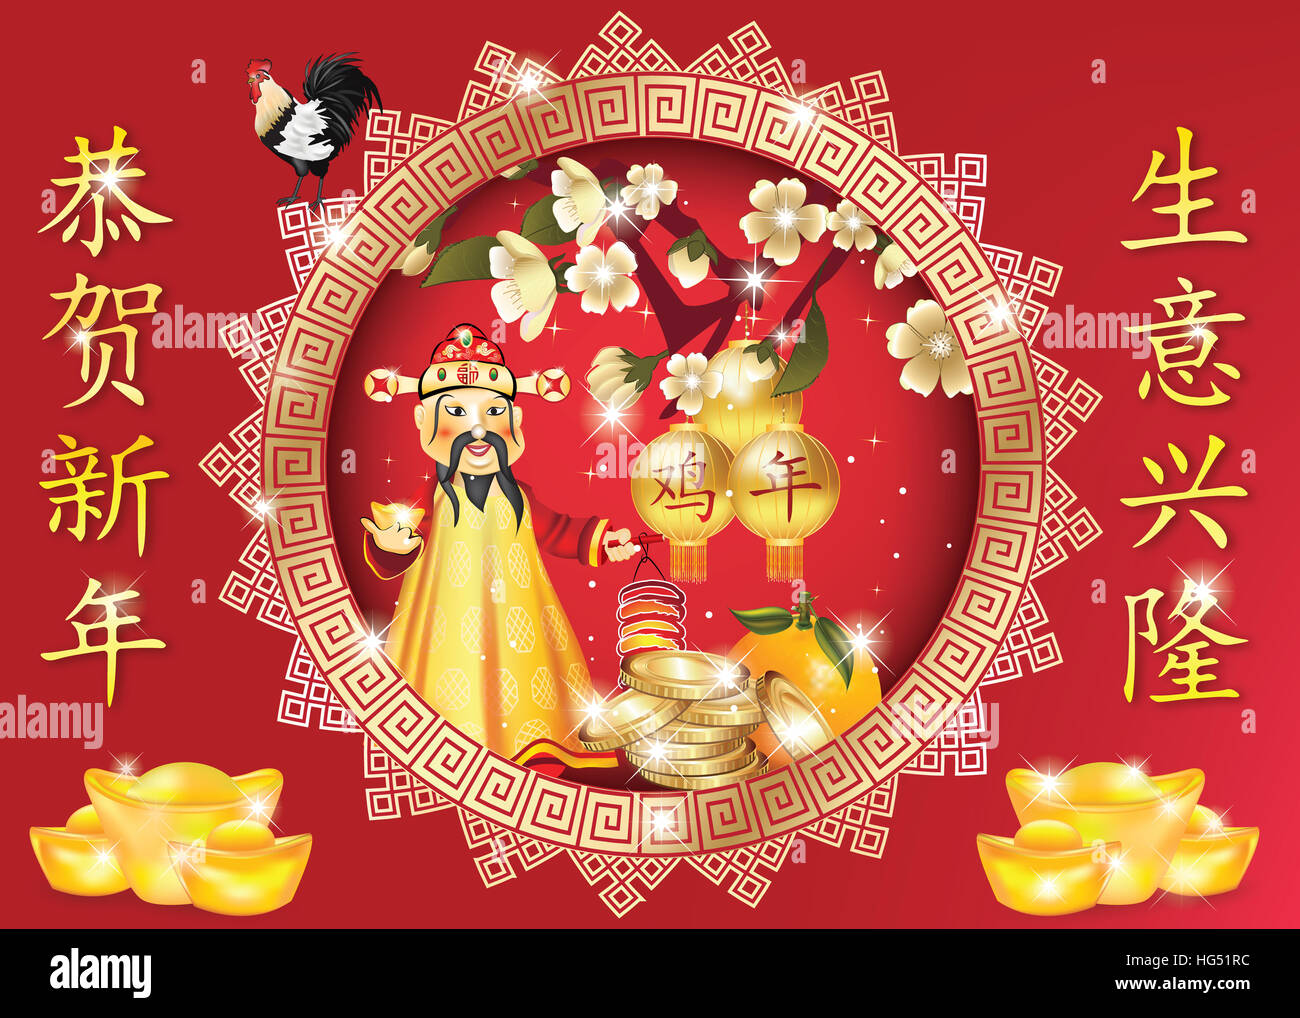 2017 business chinese new year greeting card for print containing god of wealth